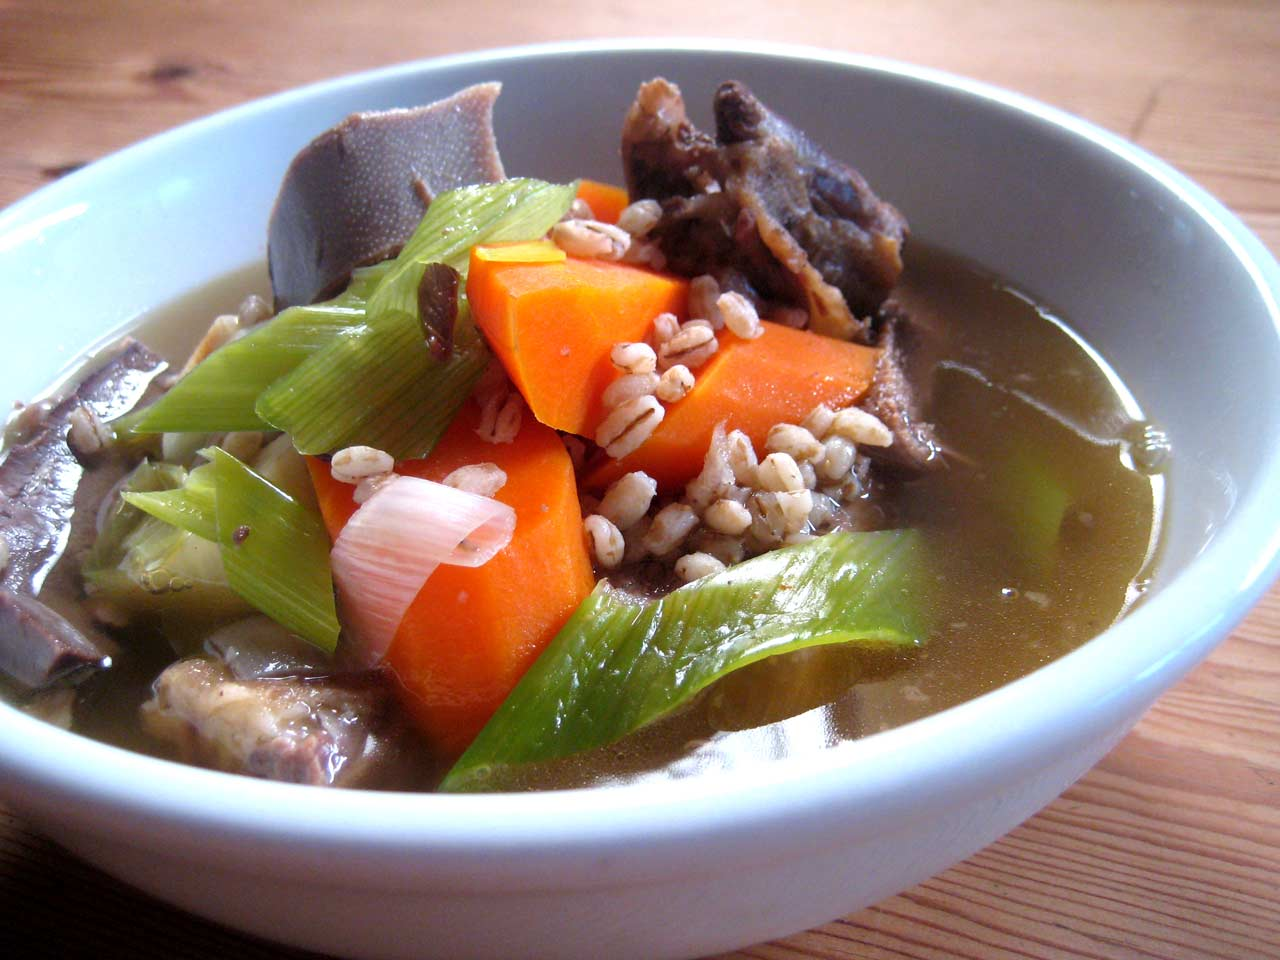 Hugh Fearnley-Whittingstall's pot au feu